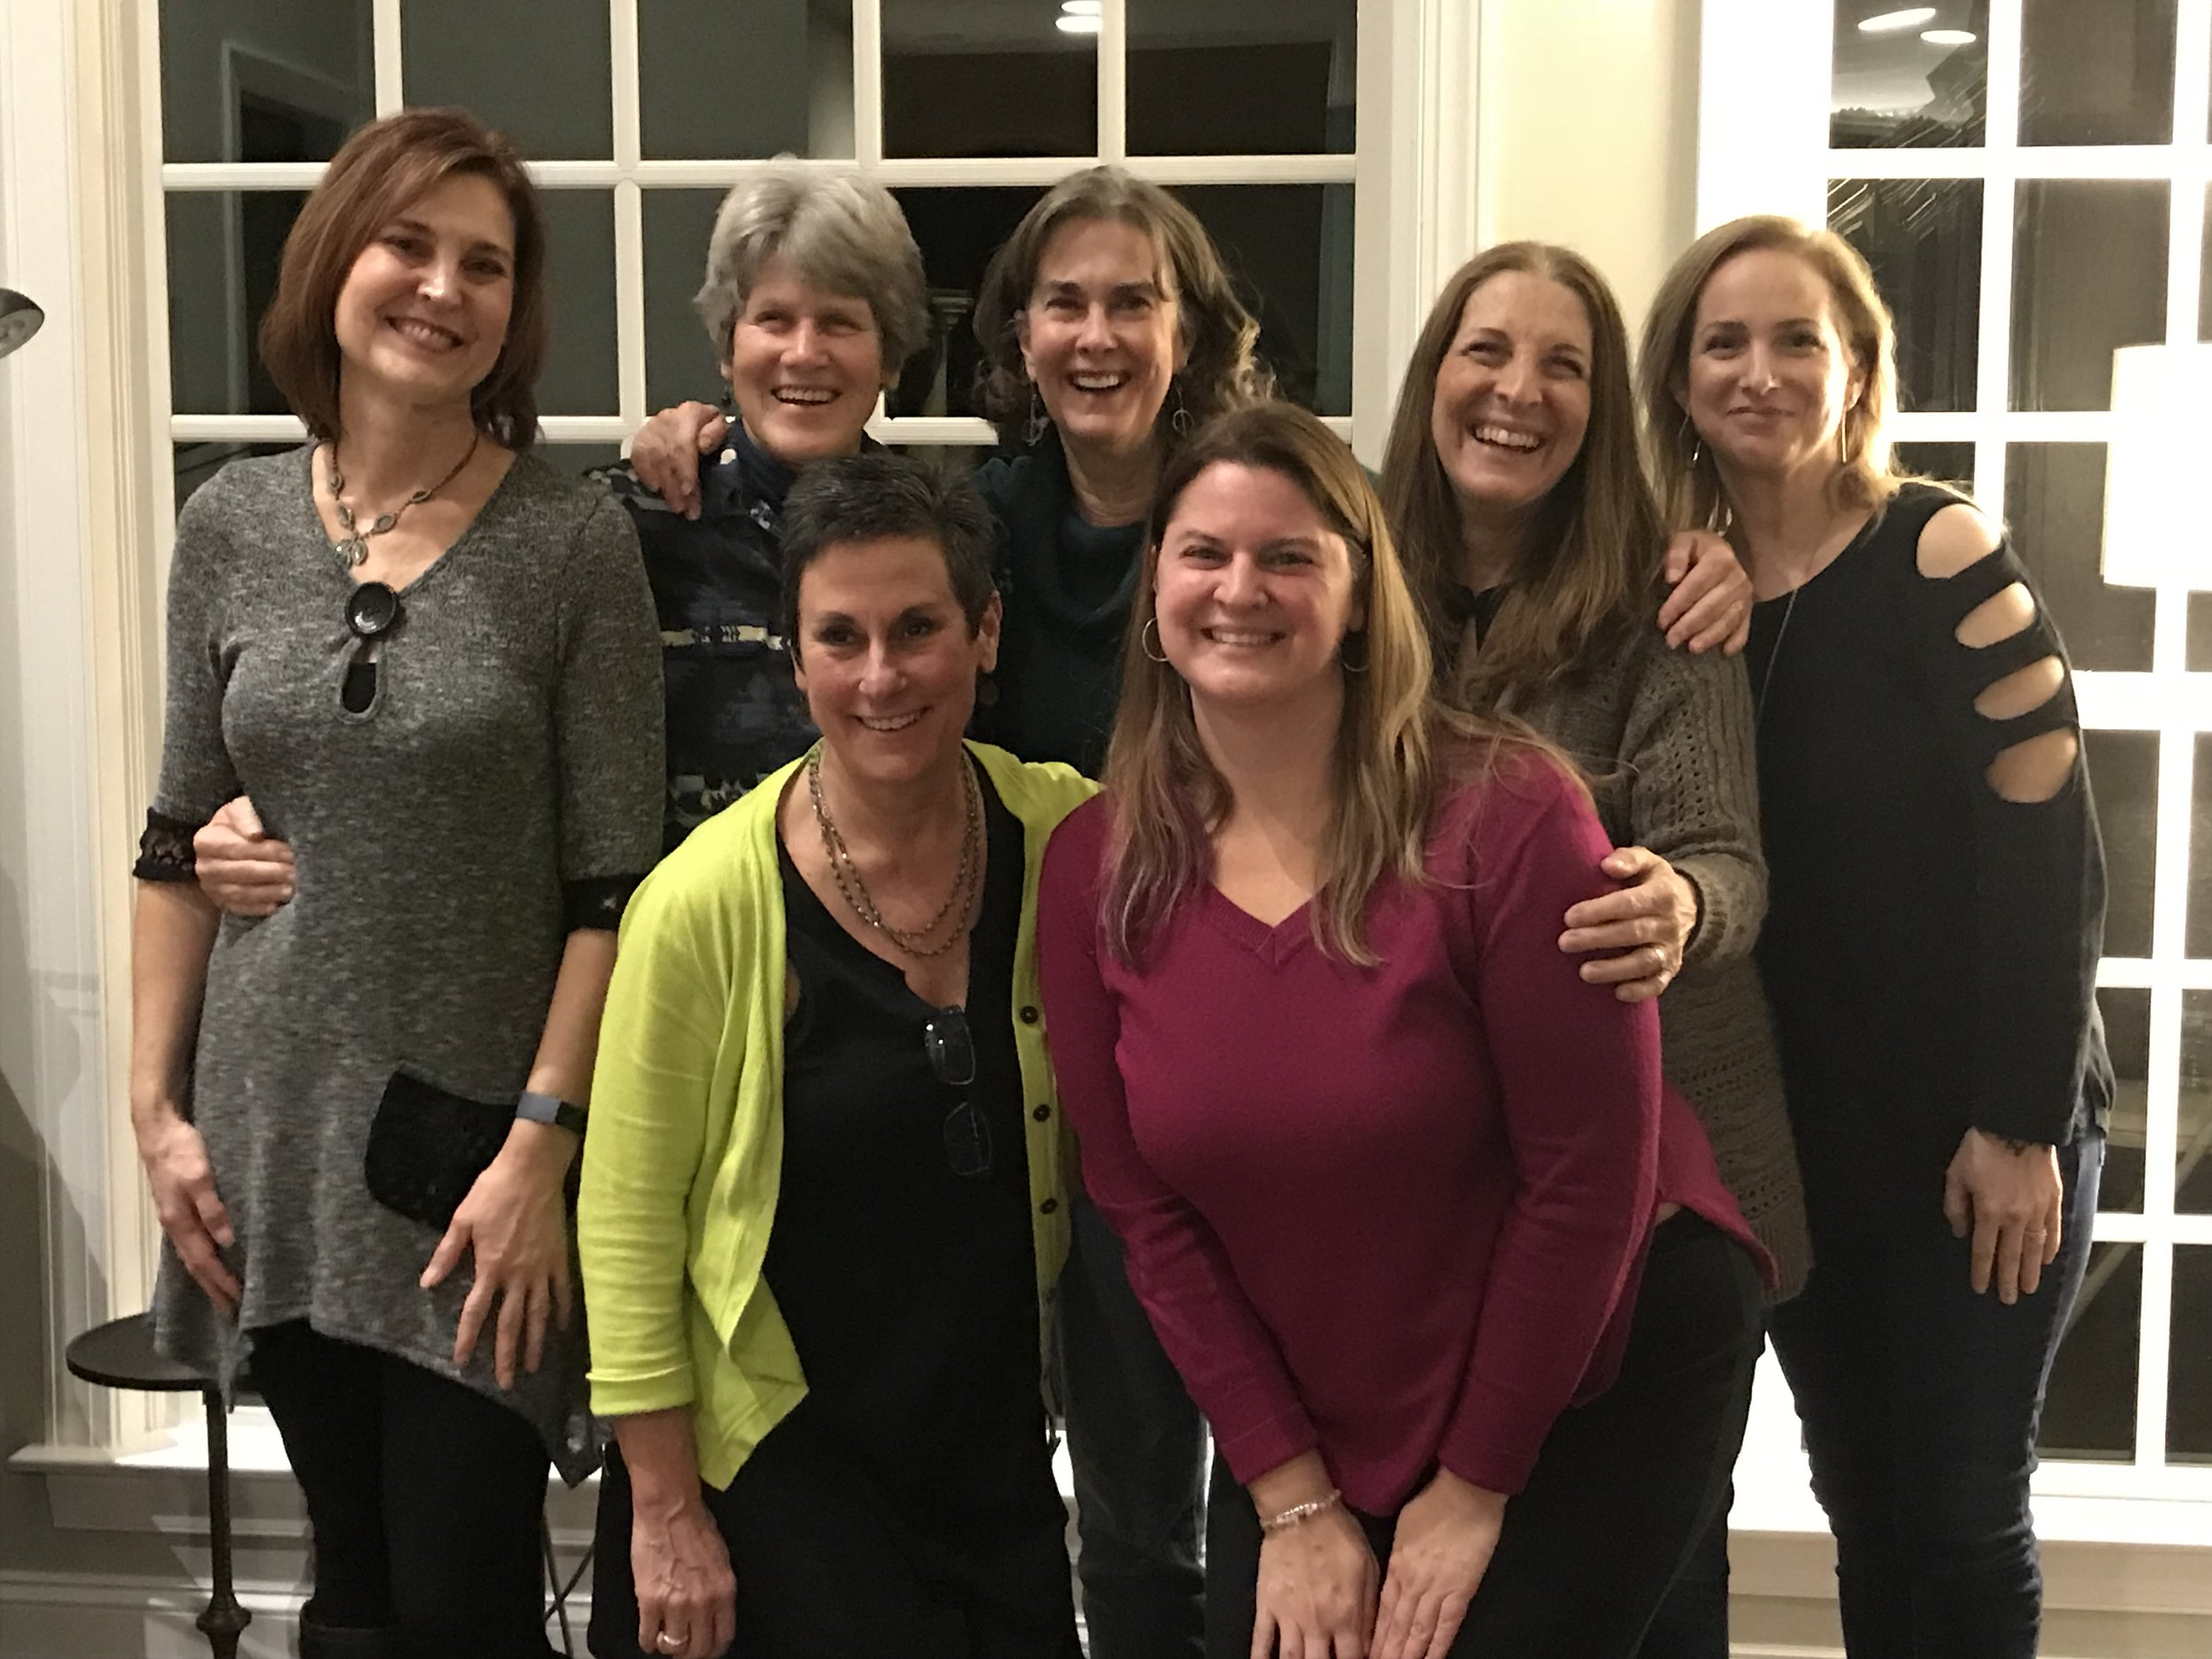 Songwriters, clients, exceptional women… friends.